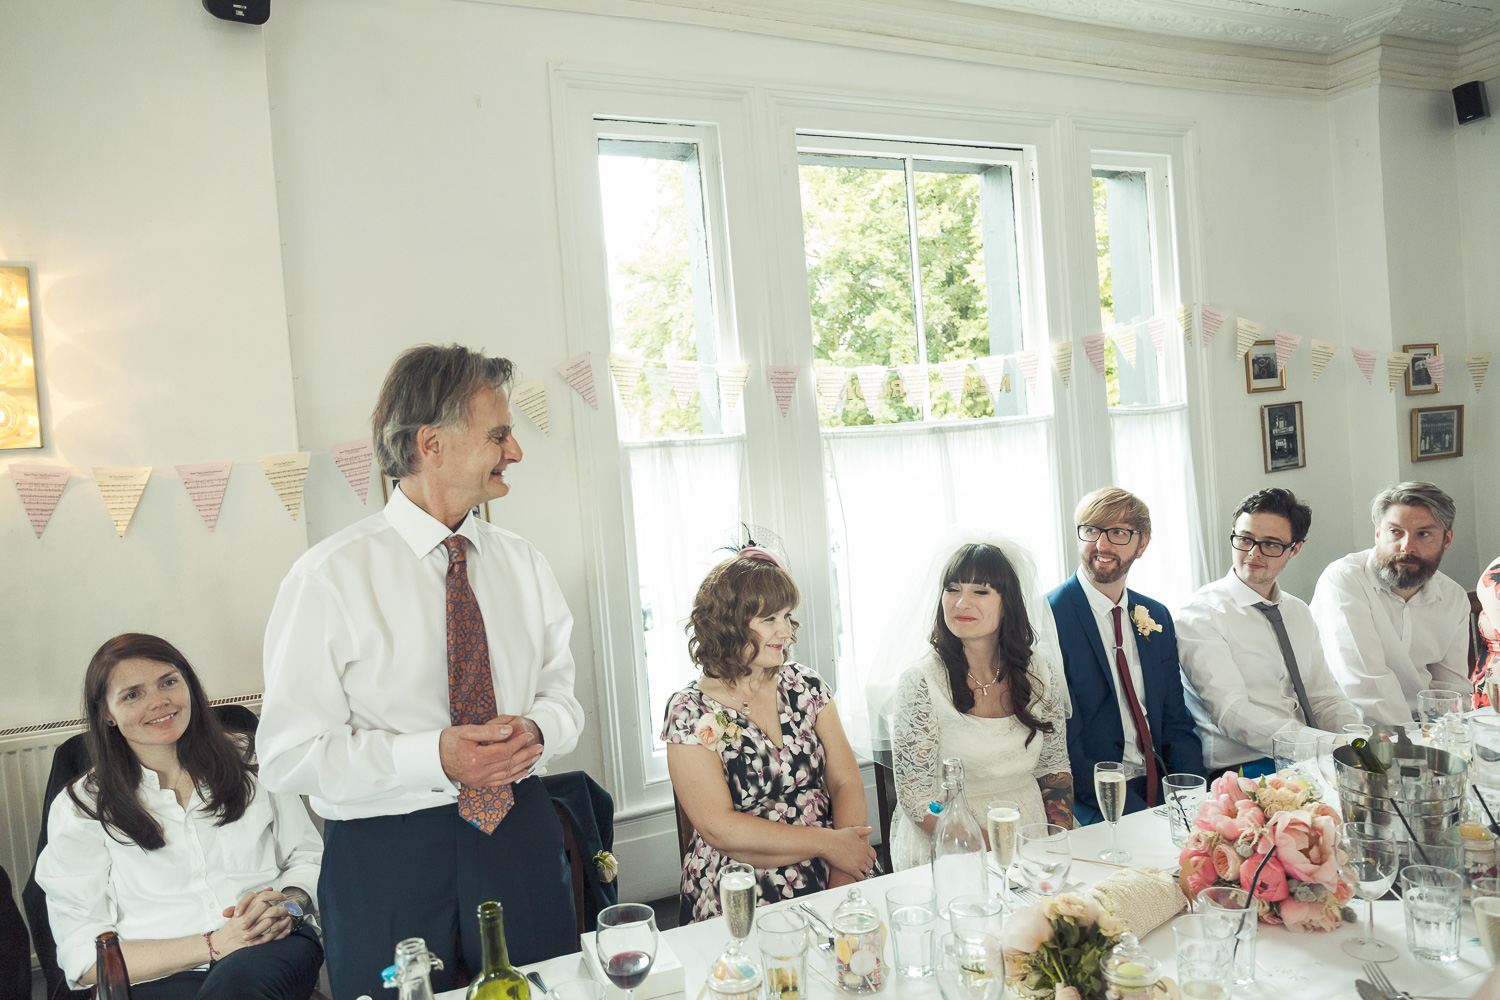 burgh-house-hampstead-north-london-wedding-0244.jpg